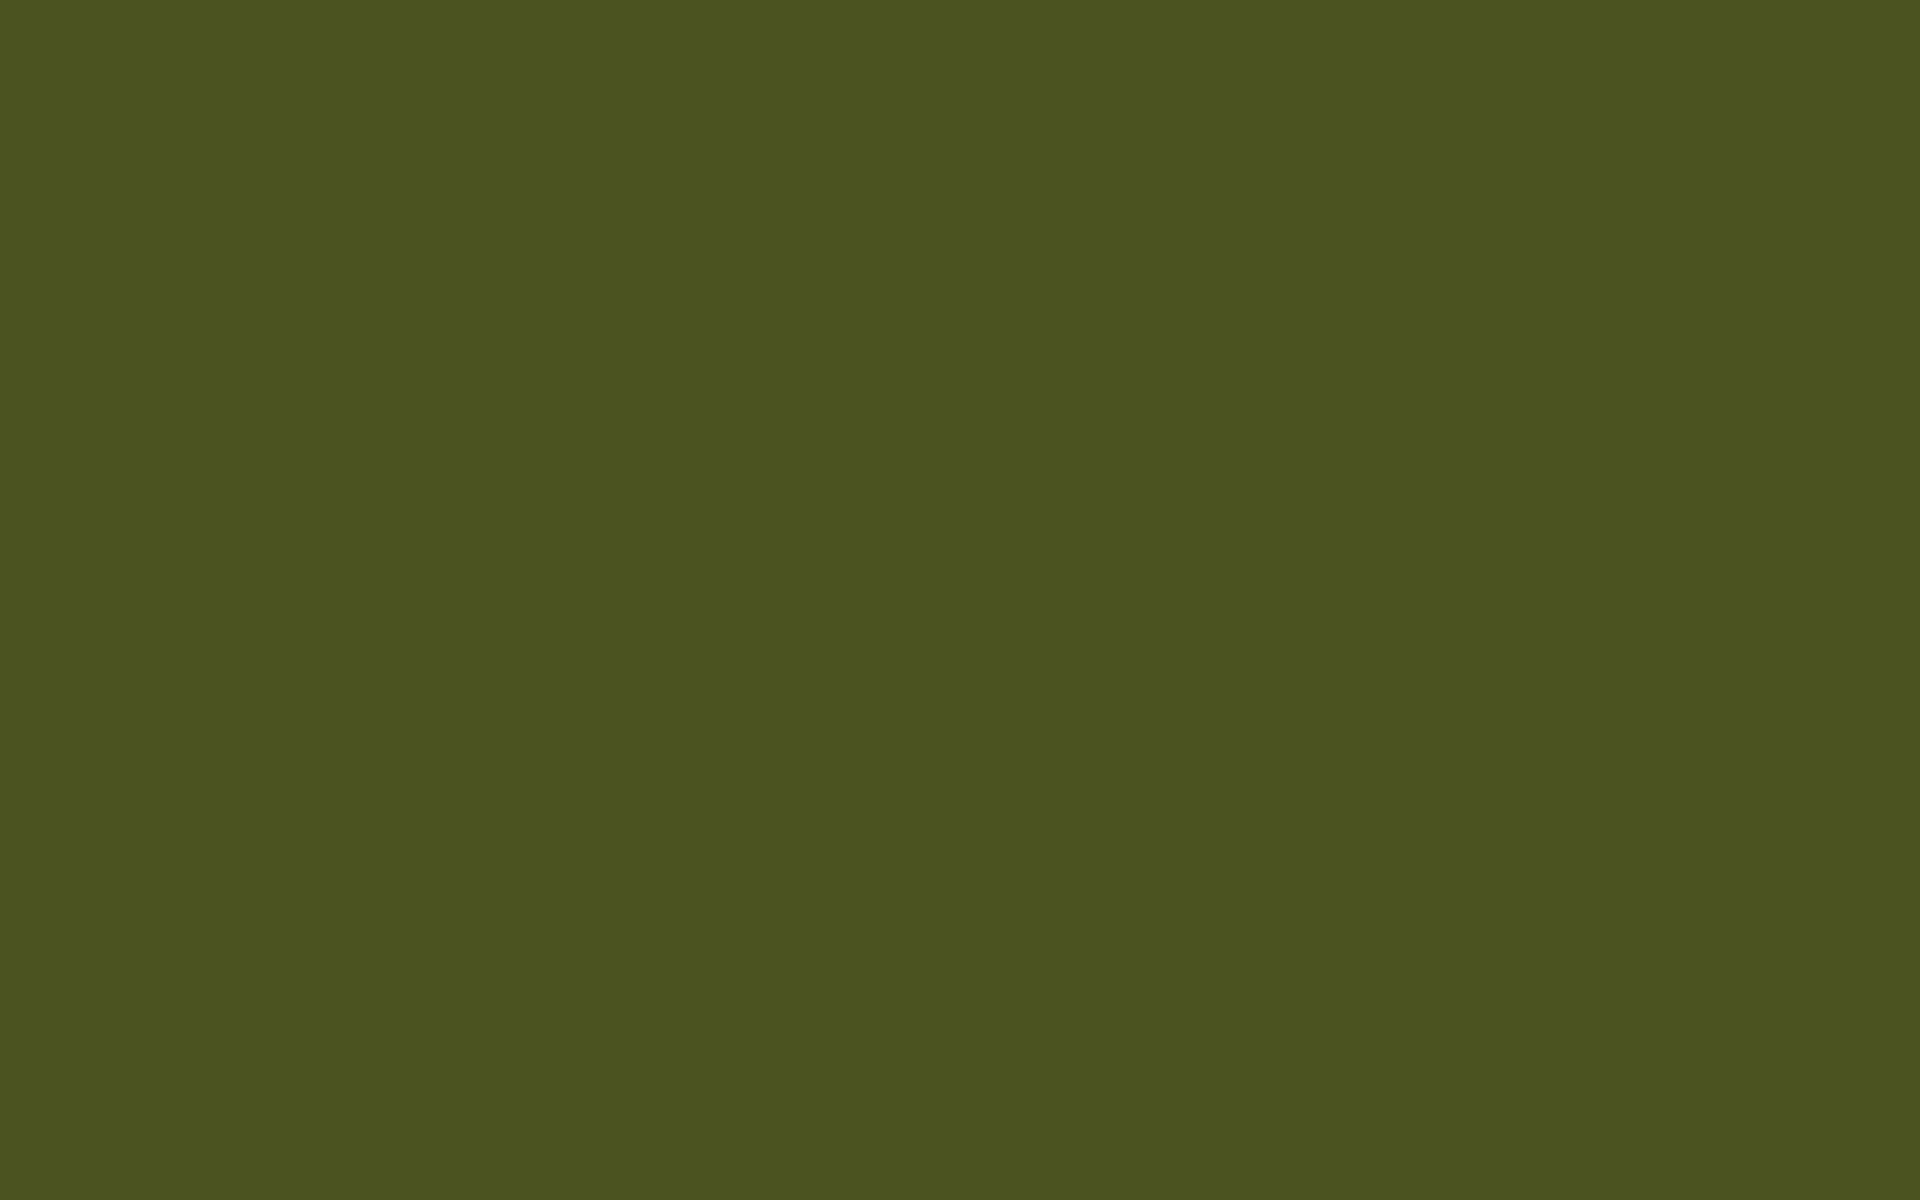 1920x1200 Army Green Solid Color Background 1920x1200